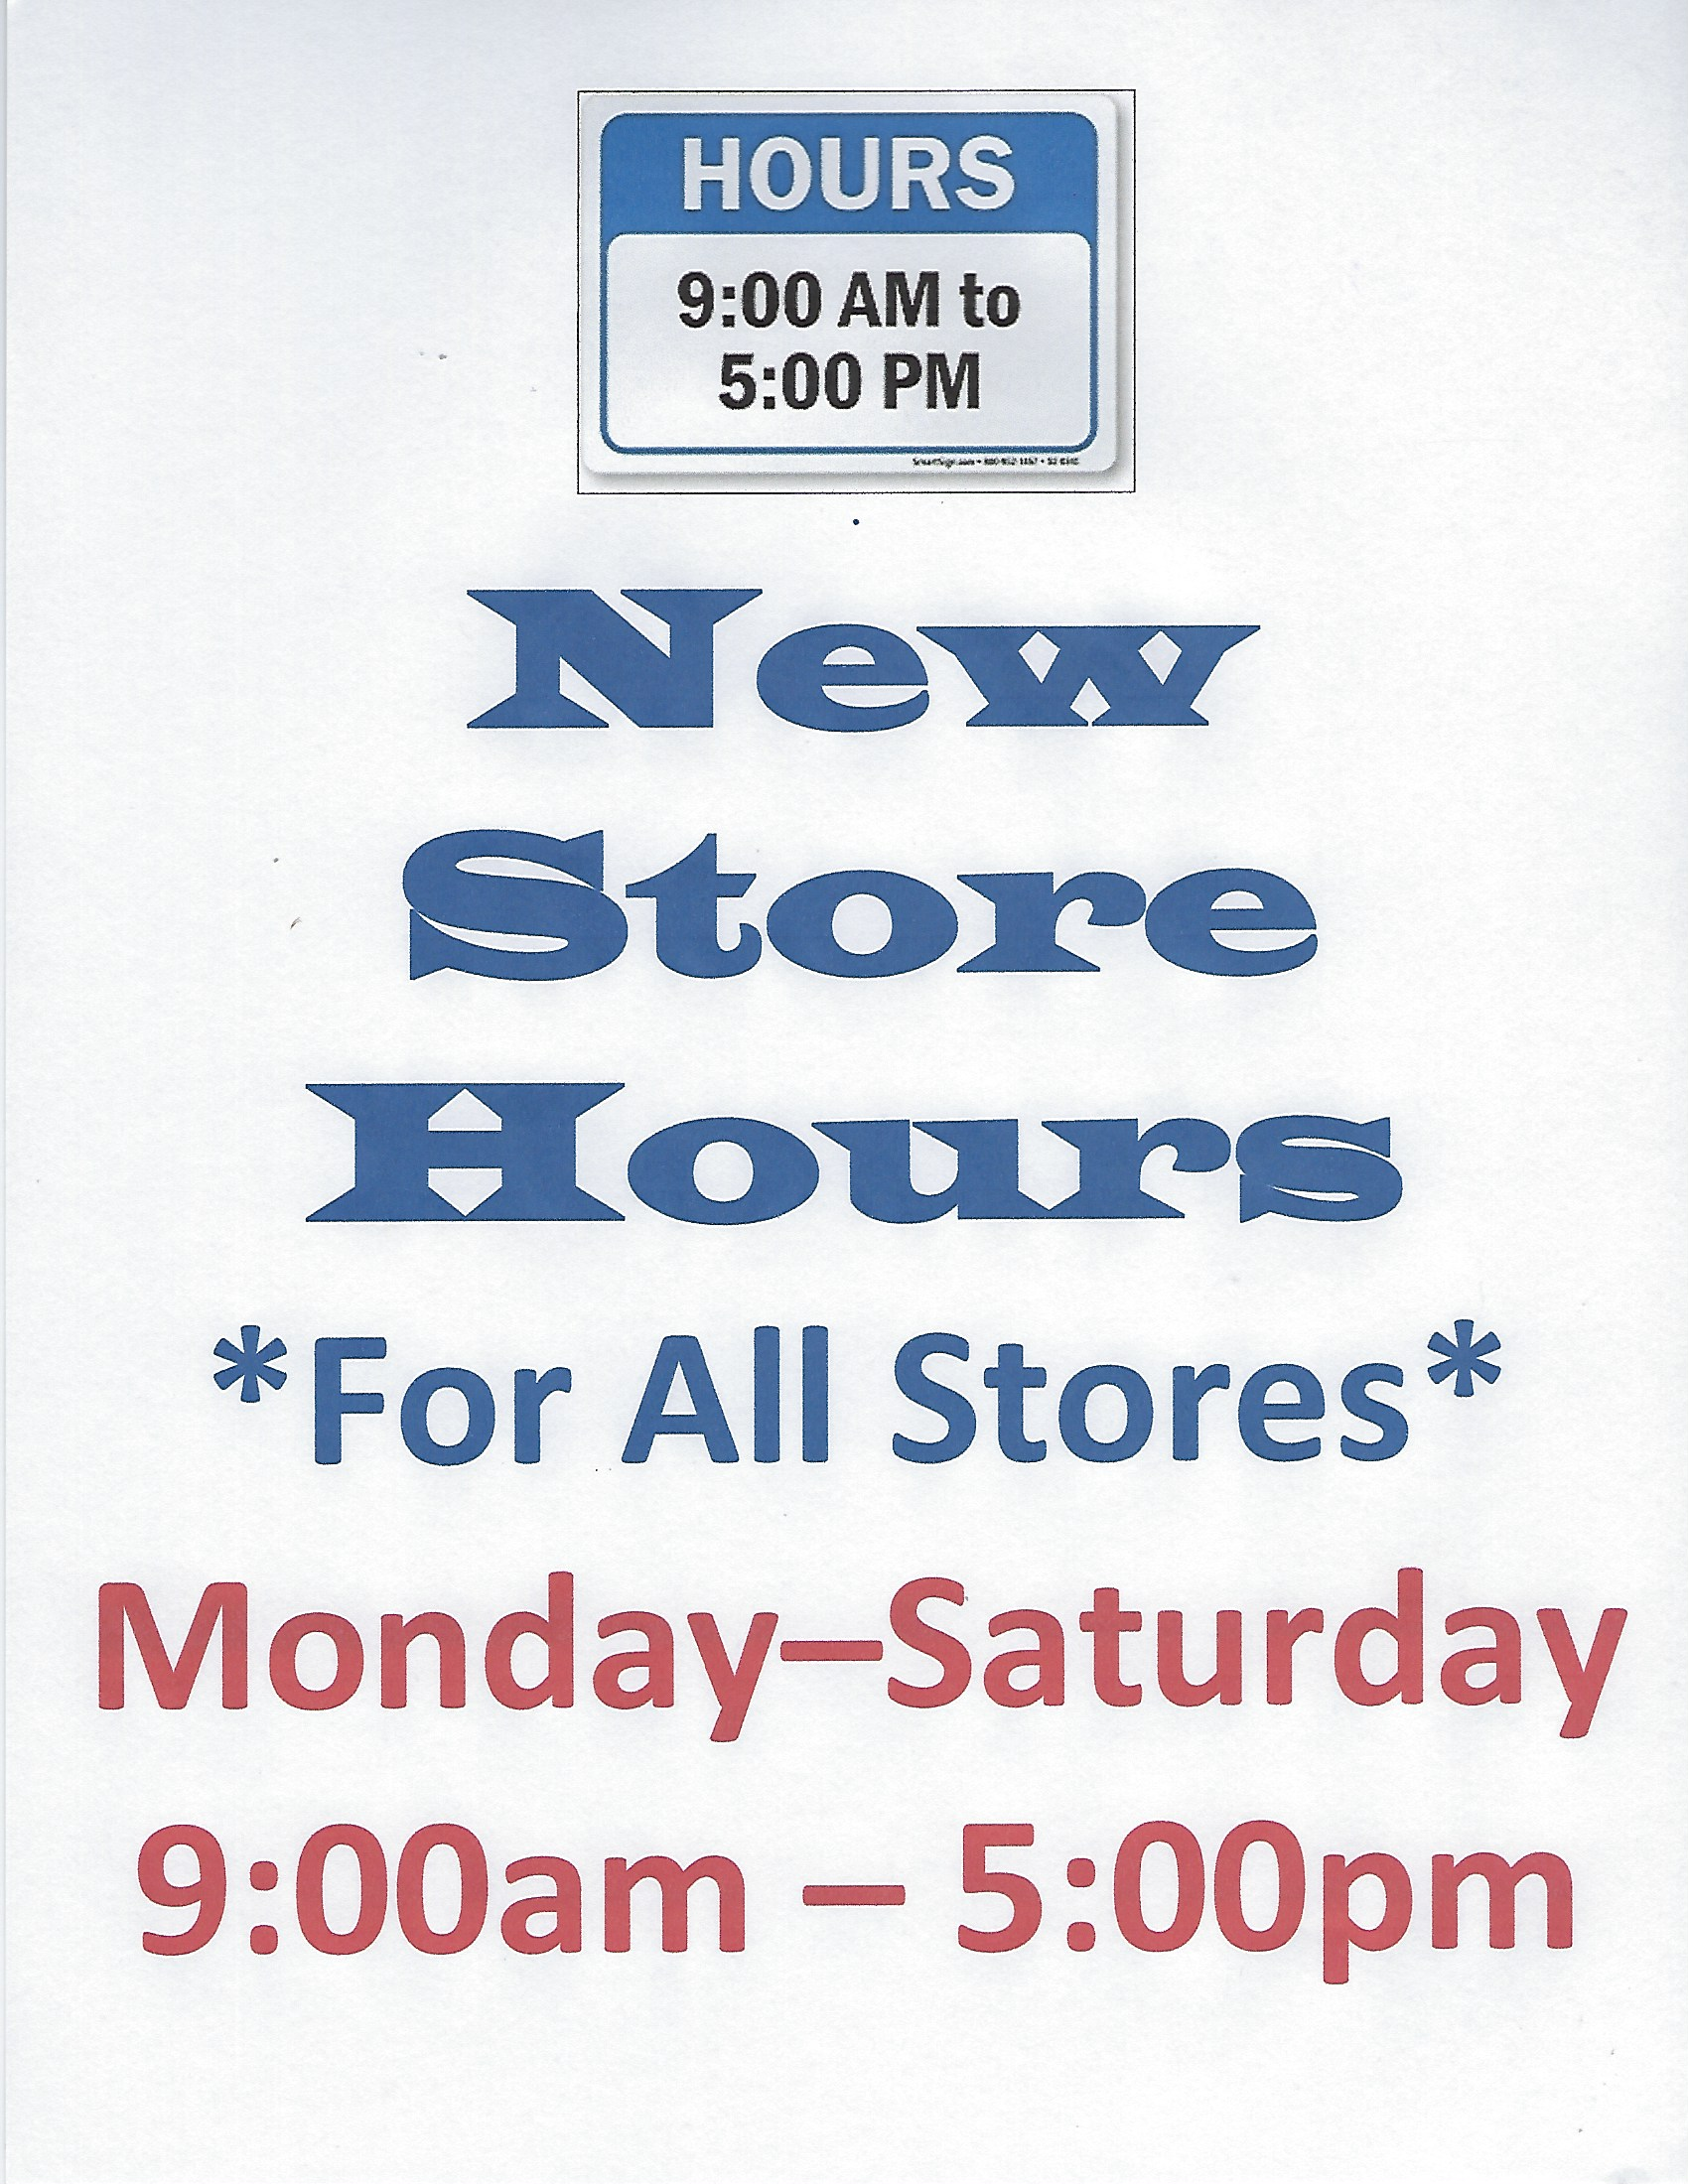 Store hours: Monday through Saturday 9am-5pm